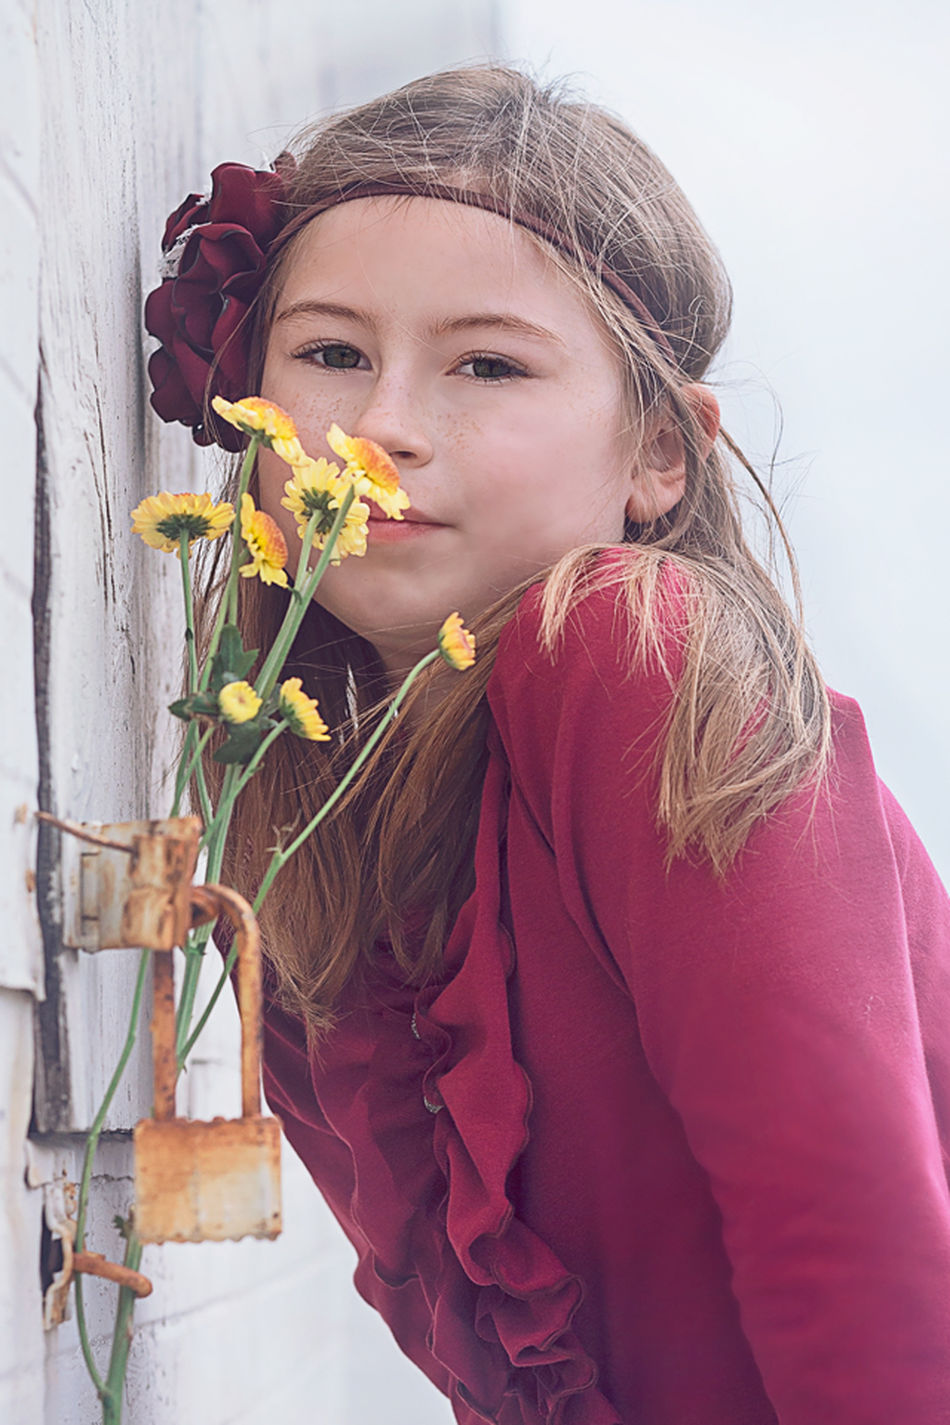 Accessories Canon Child Outdoor Child Portrait Child With Daisies Children's Portraits Day Front View Girl In Red Hapa Headshot Leisure Activity Lifestyles Little Girl With Headband Looking At Camera Portrait Red Showcase April Smelling The Flowers Smiling Three Quarter Length Vintage Style Waist Up Yellow Daisy The Portraitist - 2016 EyeEm Awards